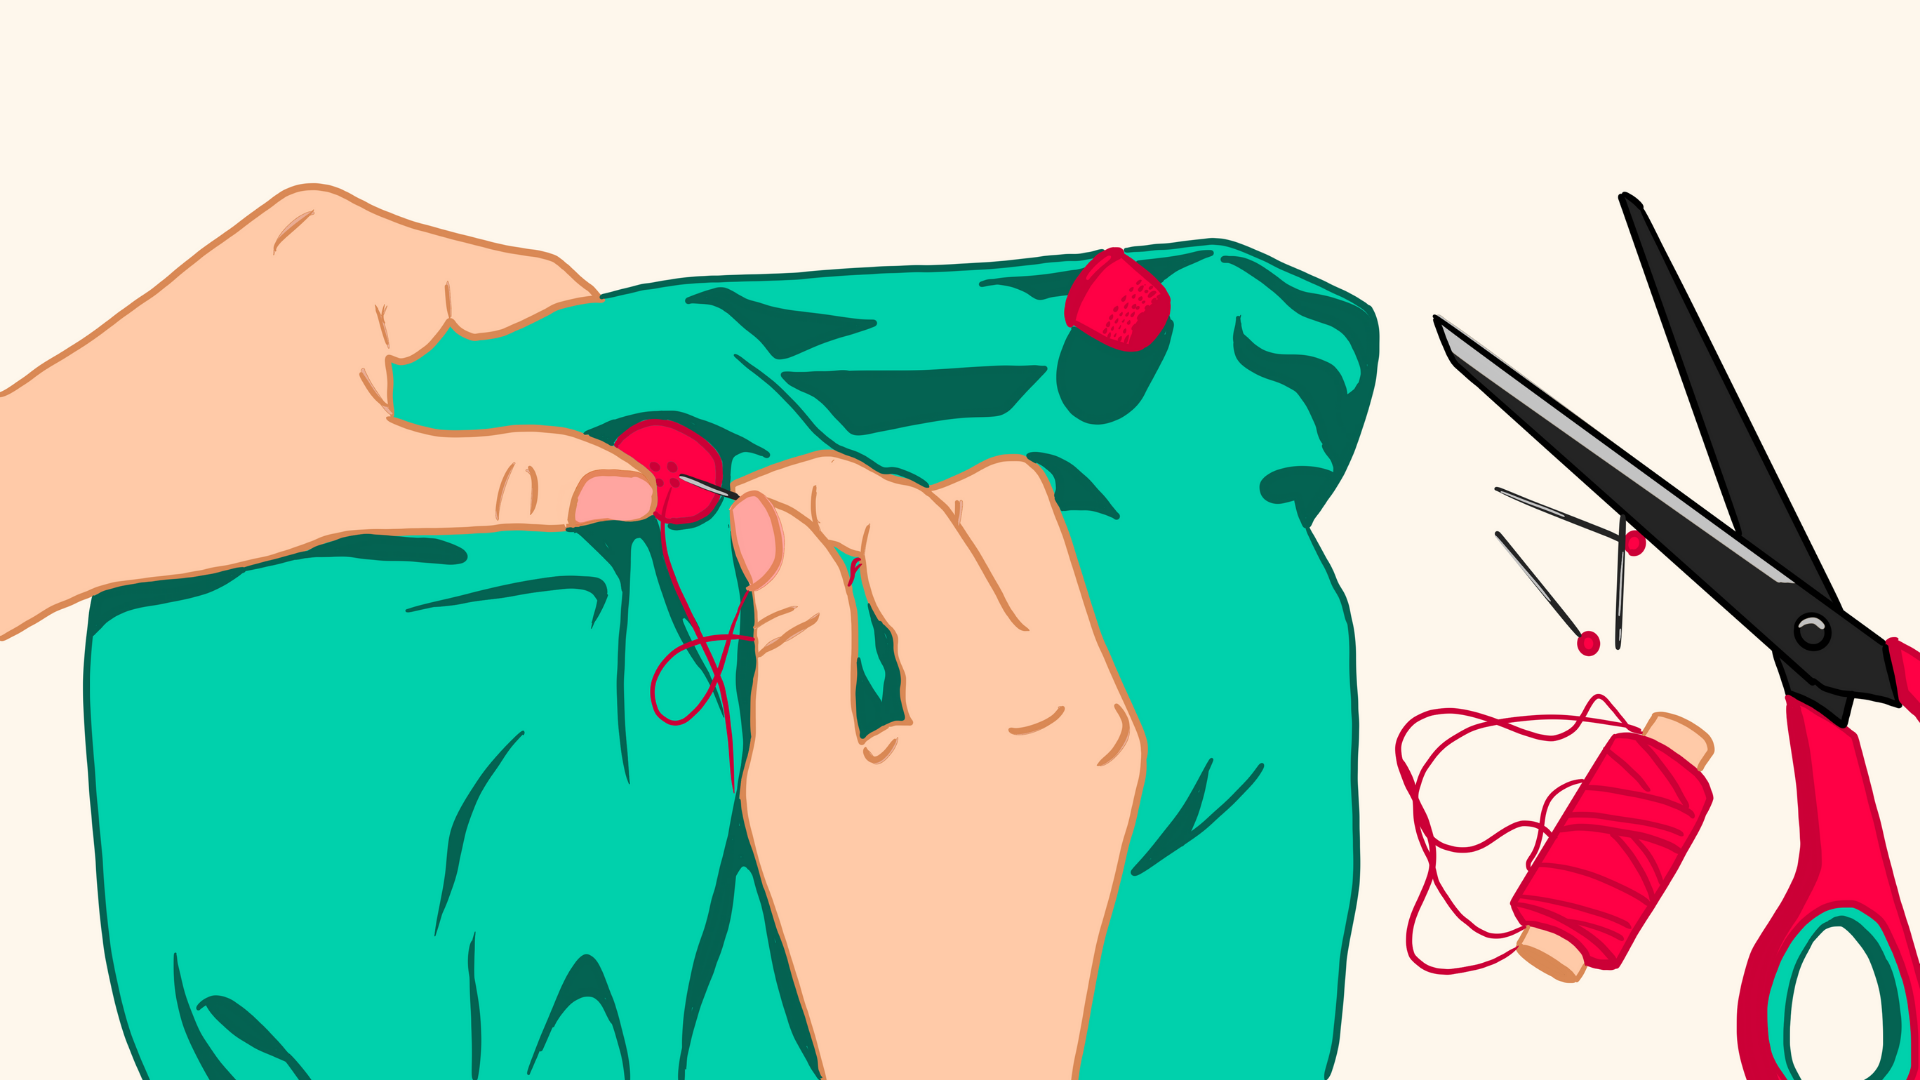 Illustration of a person hand-sewing